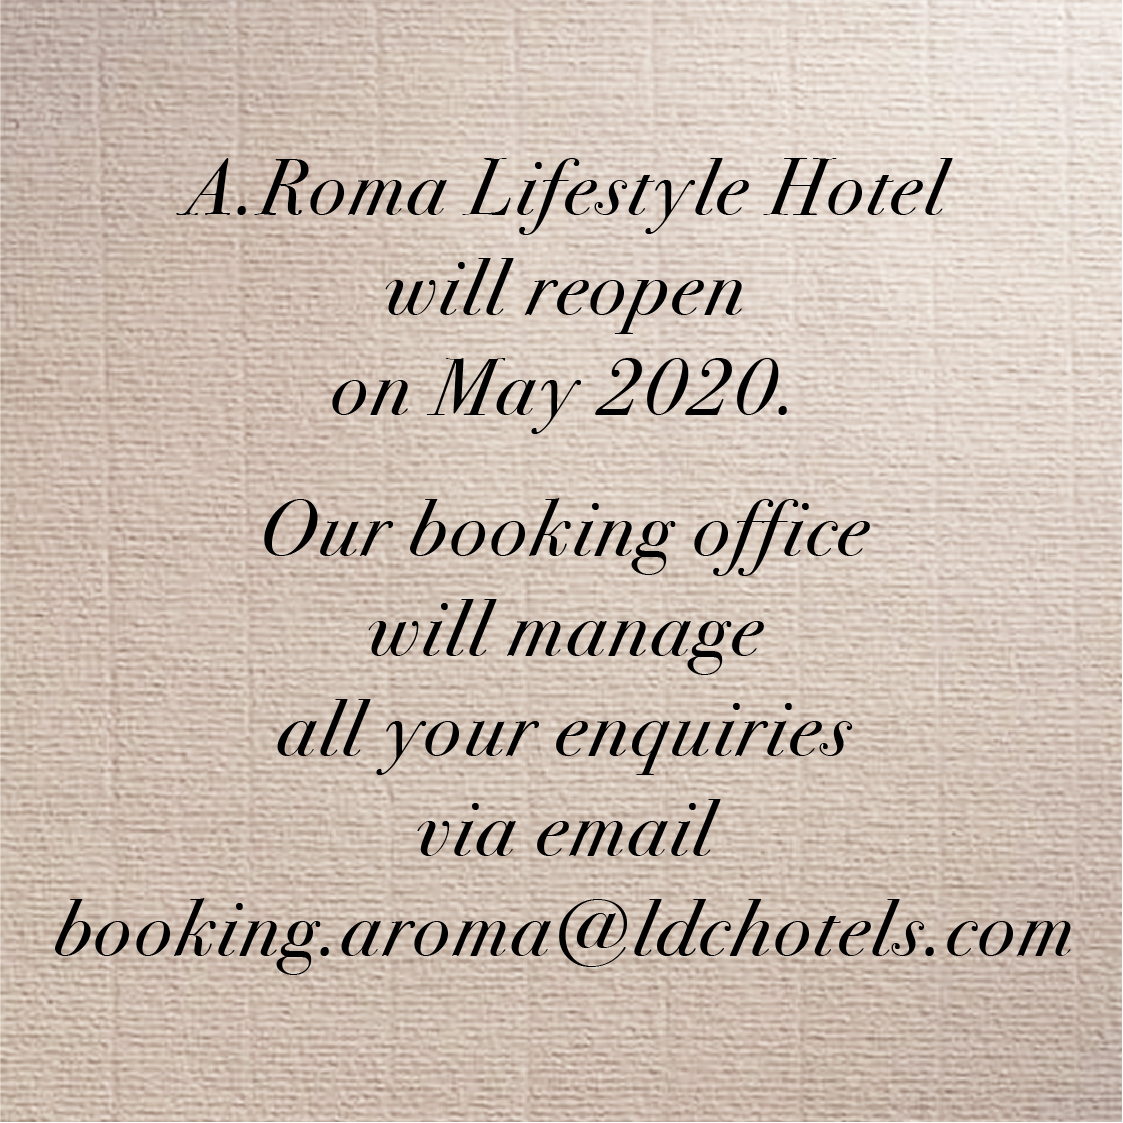 A.Roma Lifestyle Hotel - May Reopening